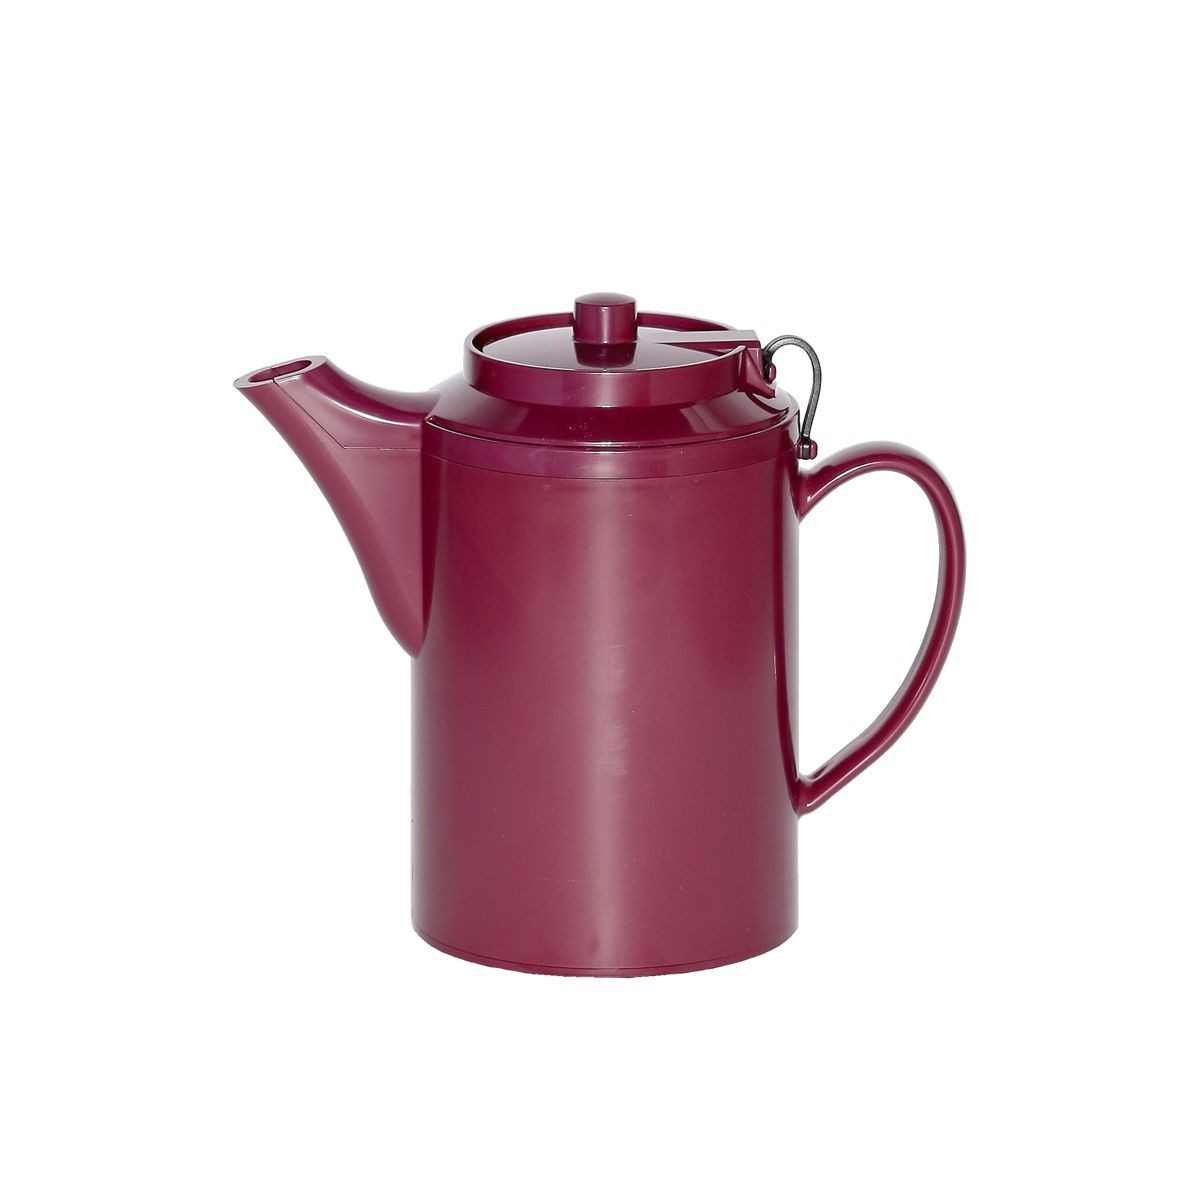 Service Ideas TST612BU Dripless Teapot with Tether, Burgundy 16 oz.